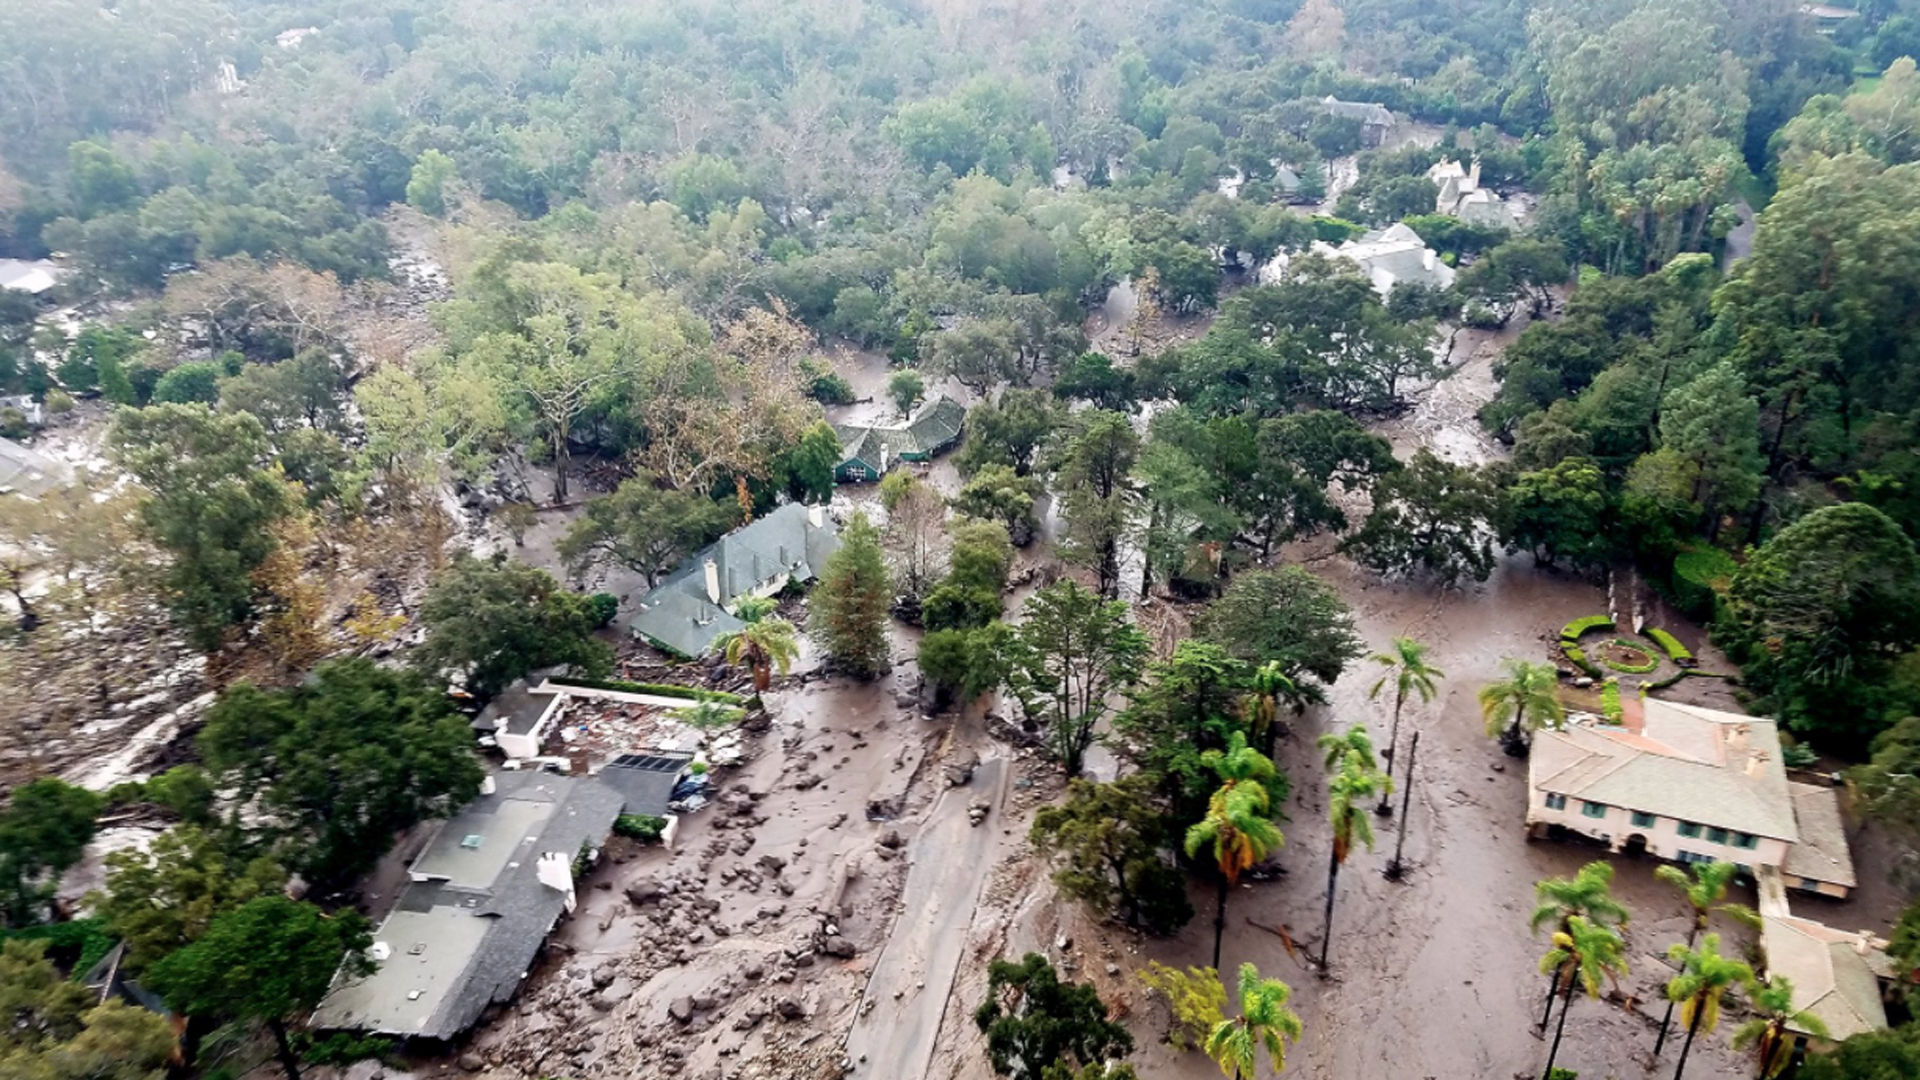 Aerial photos show the extent of the mudflow and damage in Montecito on Jan. 10, 2018, a day after slides and flooding hit. (Credit: Matt Udkow/Santa Barbara County Fire Department)